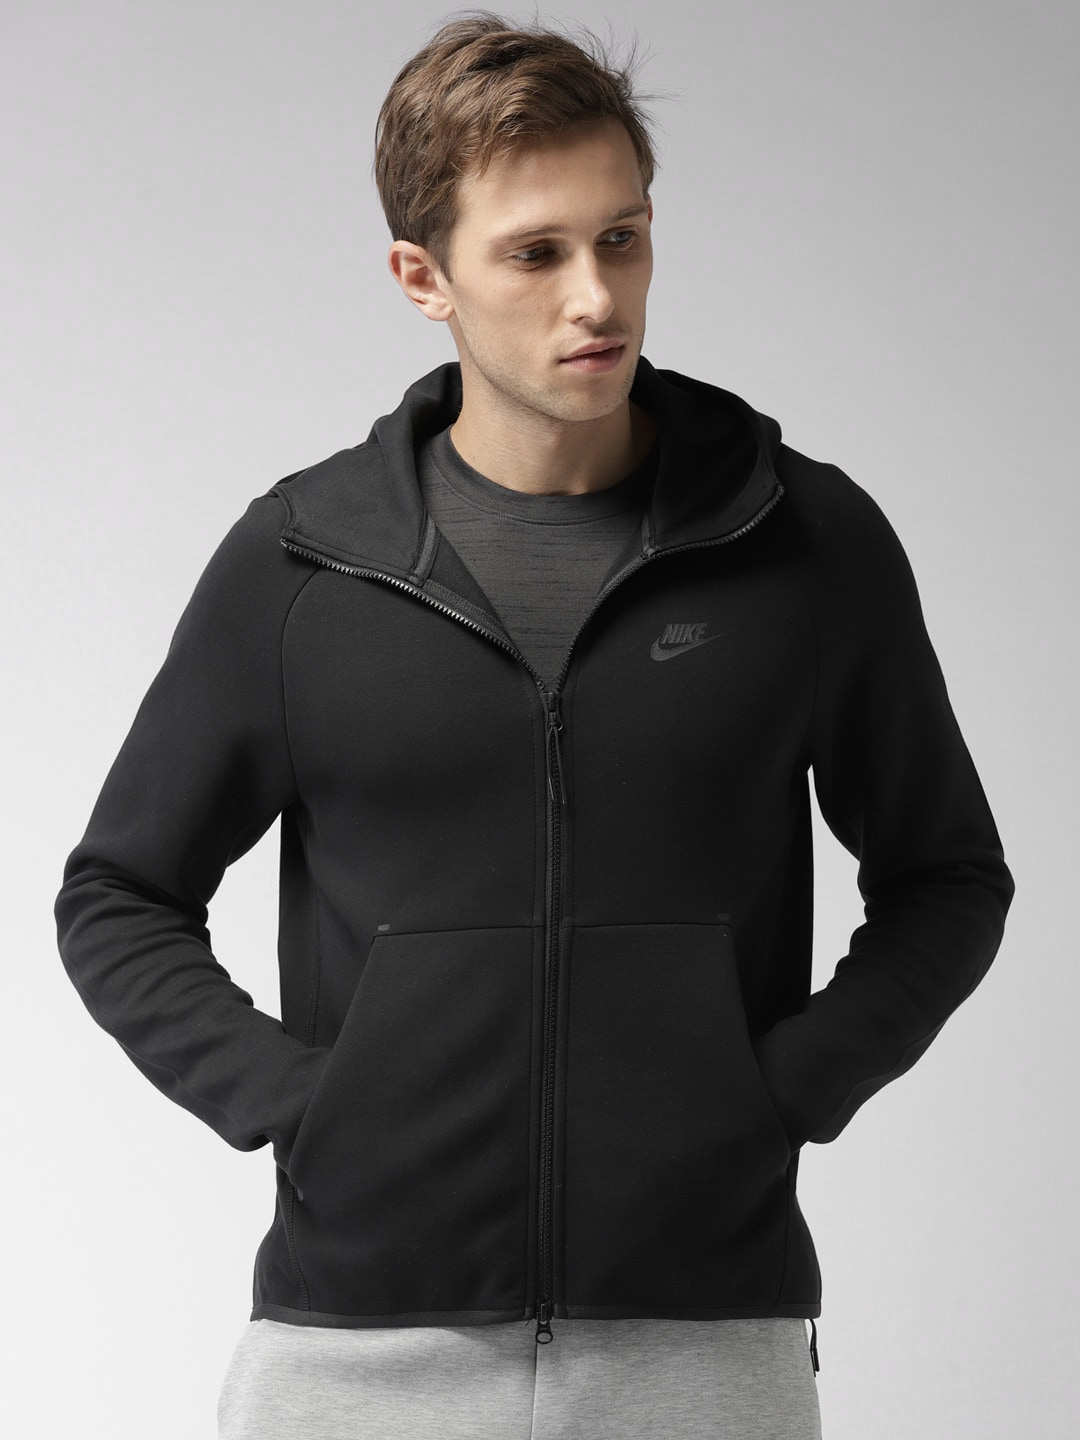 Men Nike Sweatshirts Churidar - Buy Men Nike Sweatshirts Churidar online in  India a34d28b68